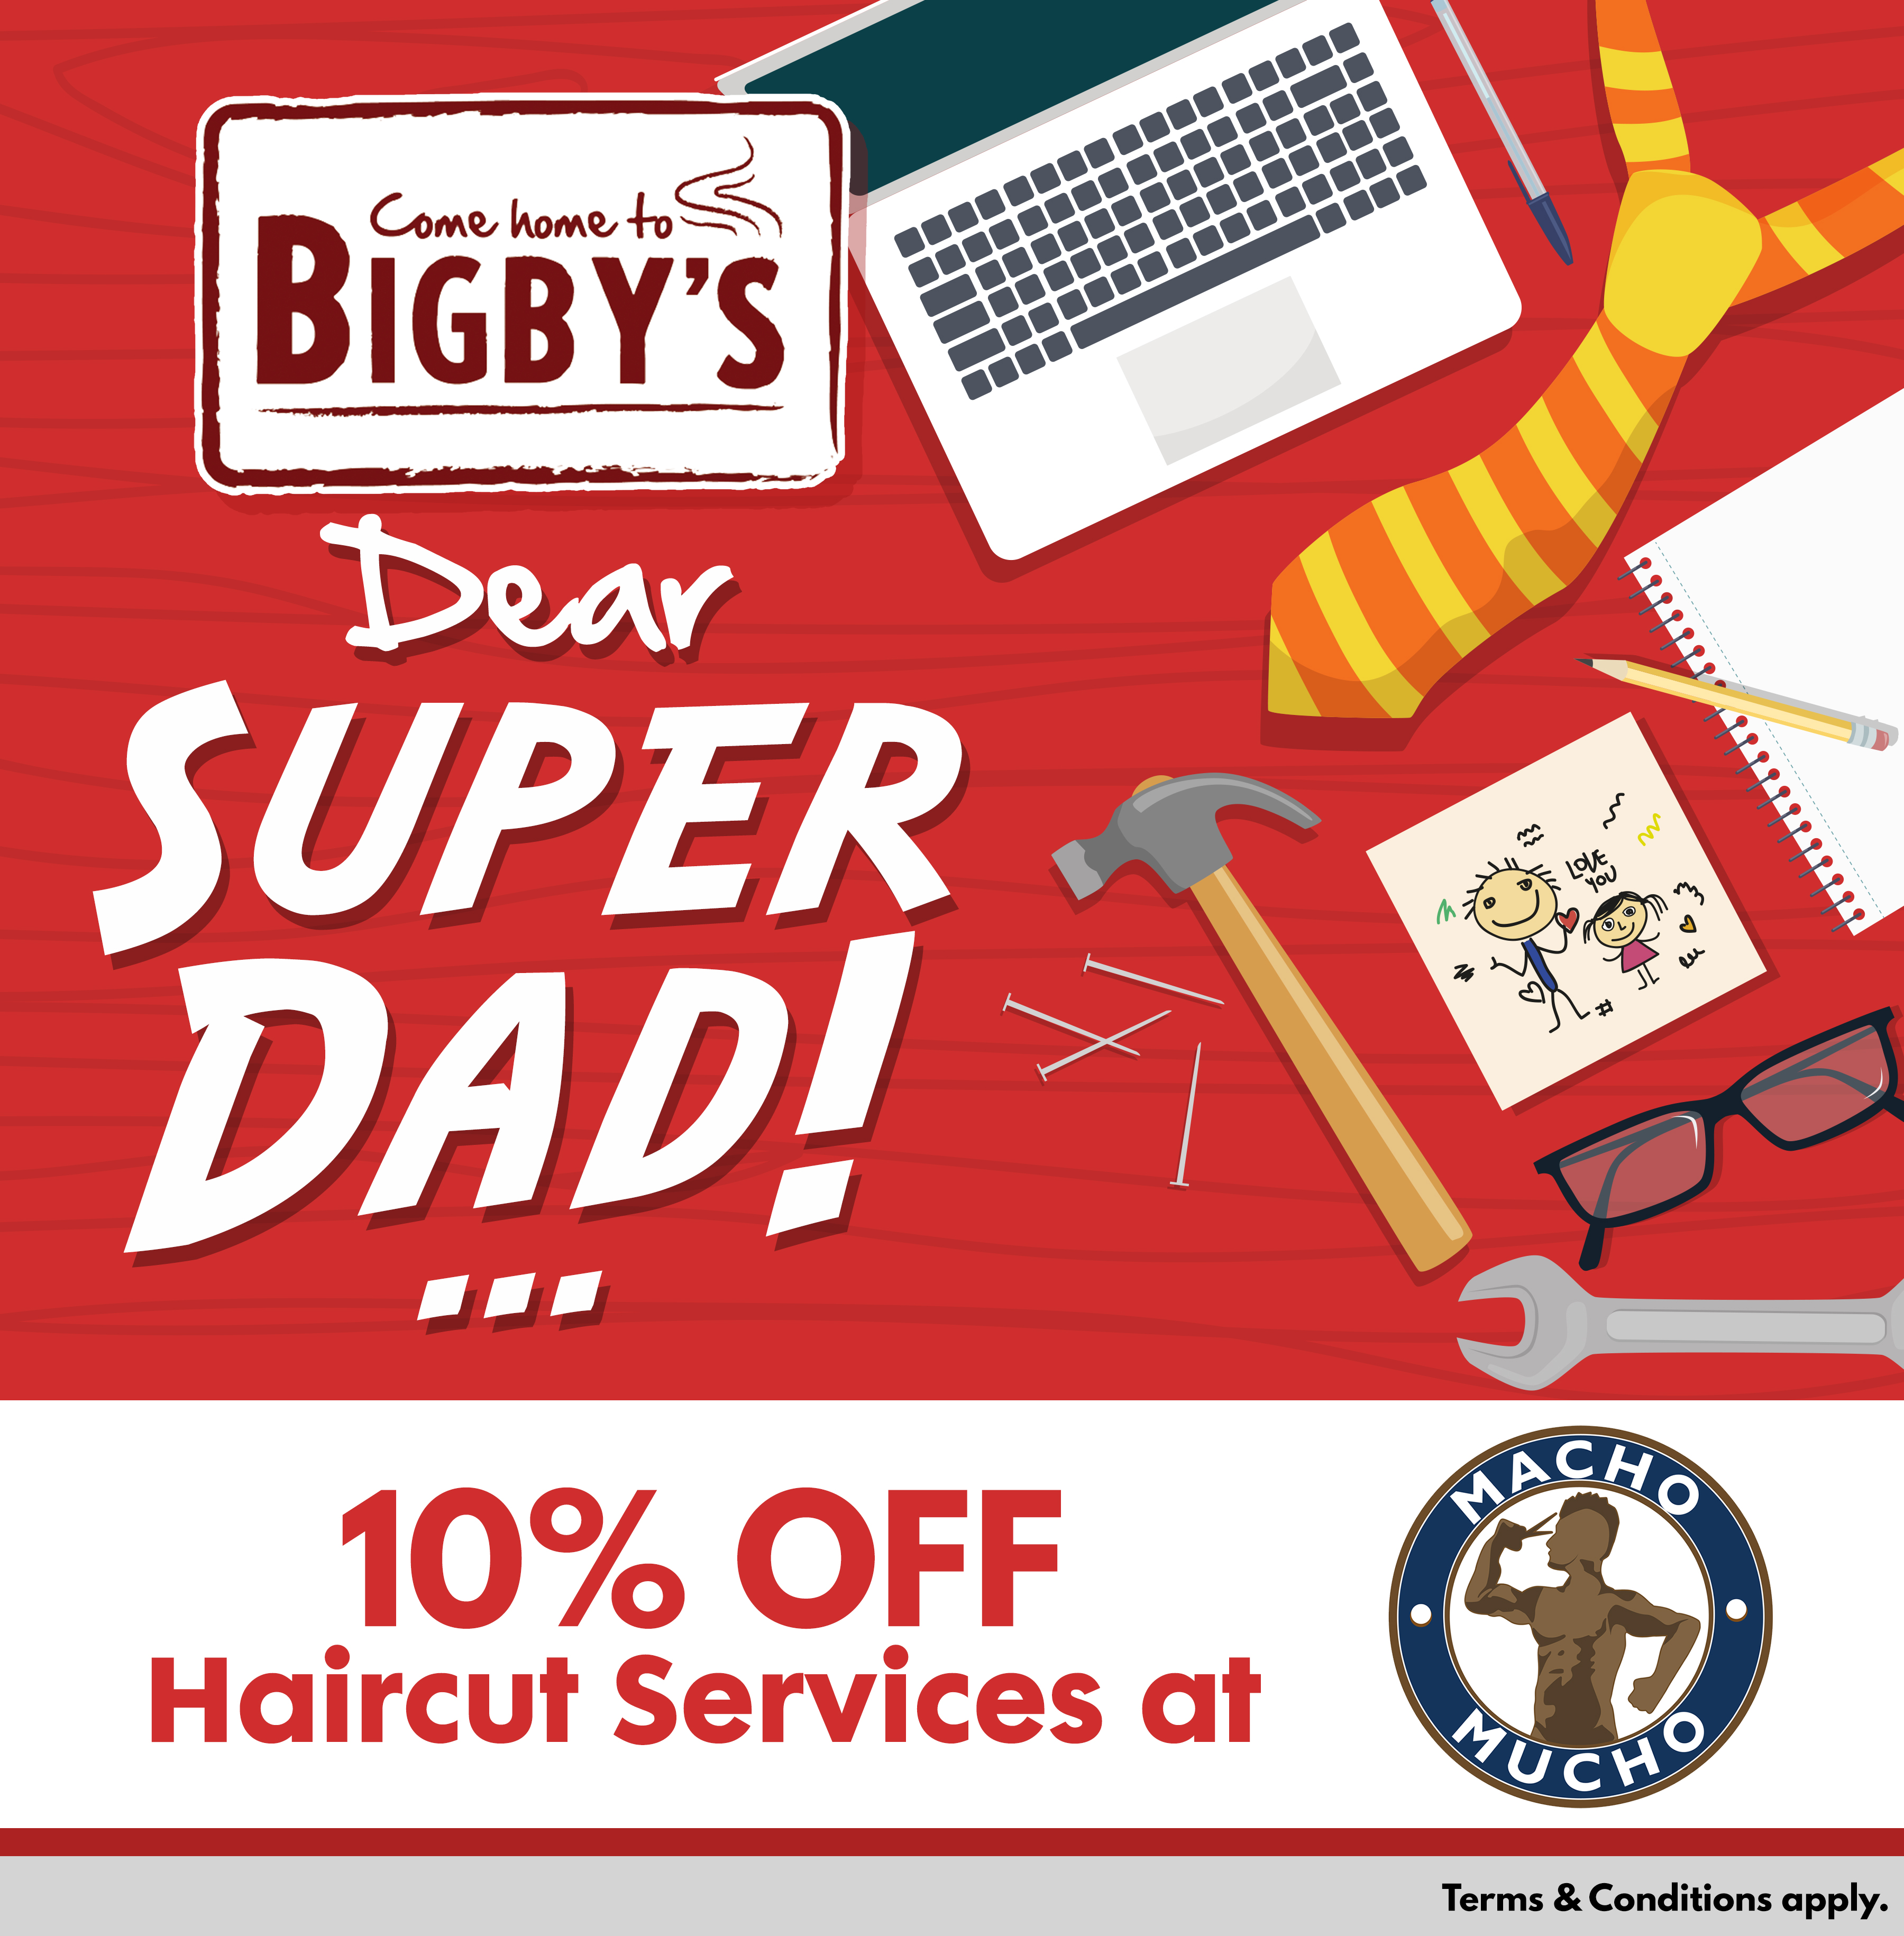 bigby s father s day 2017 promo bigby s cafe and restaurant come